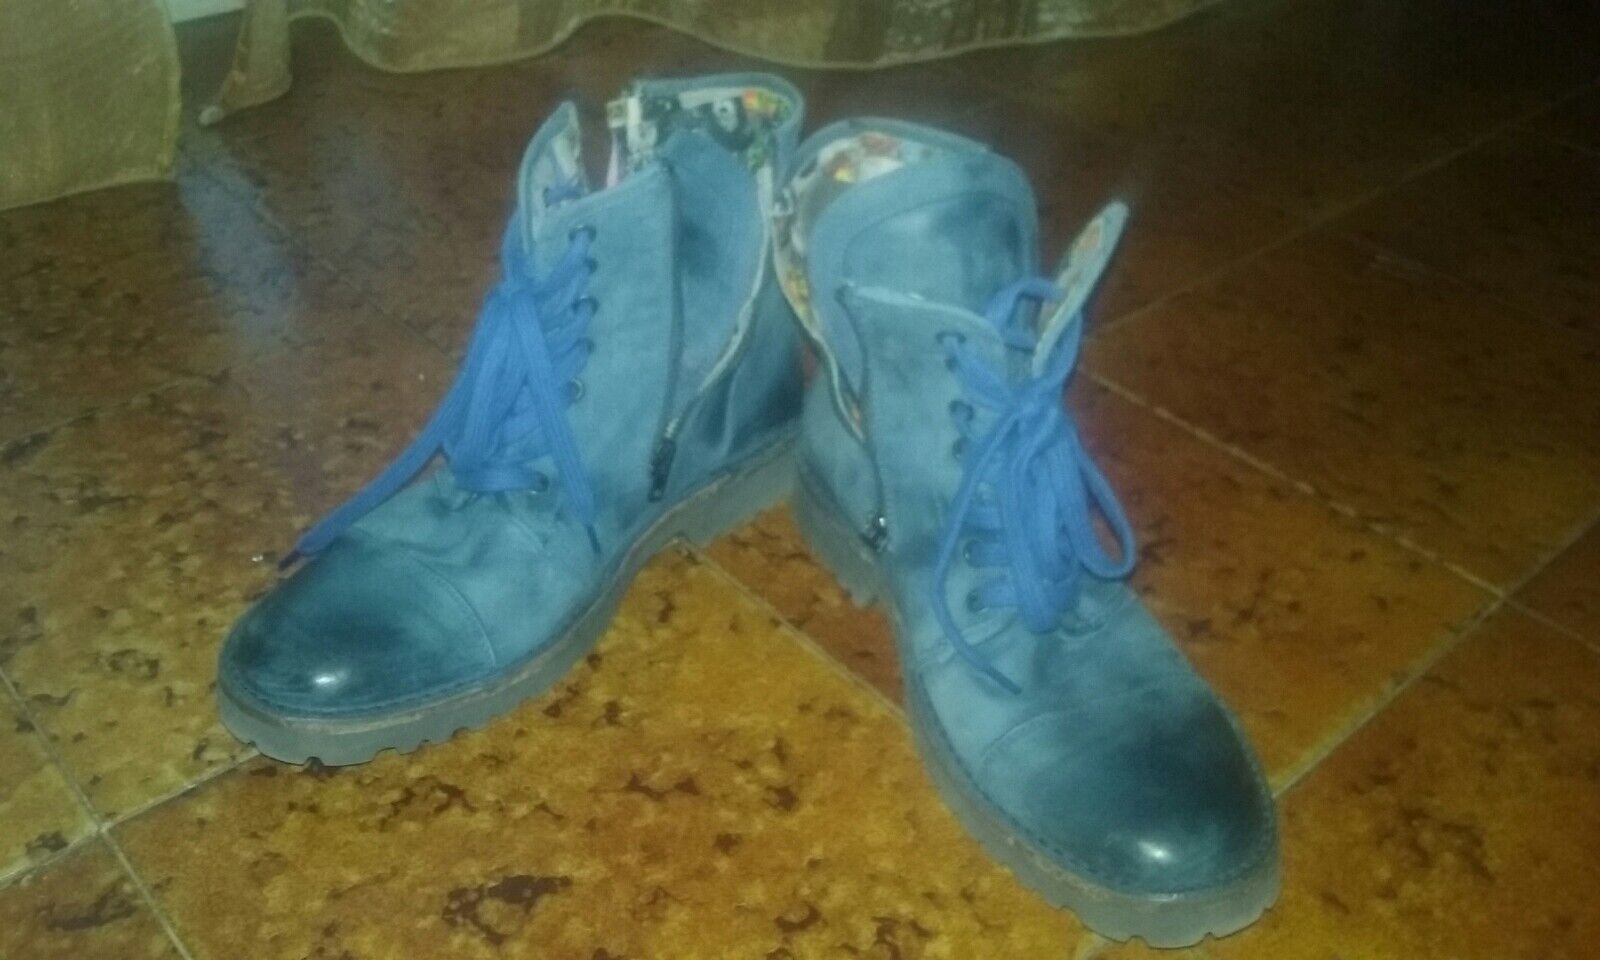 blueE LEATHER ANKLE BOOTS - MADE IN ITALY - SIZE 8